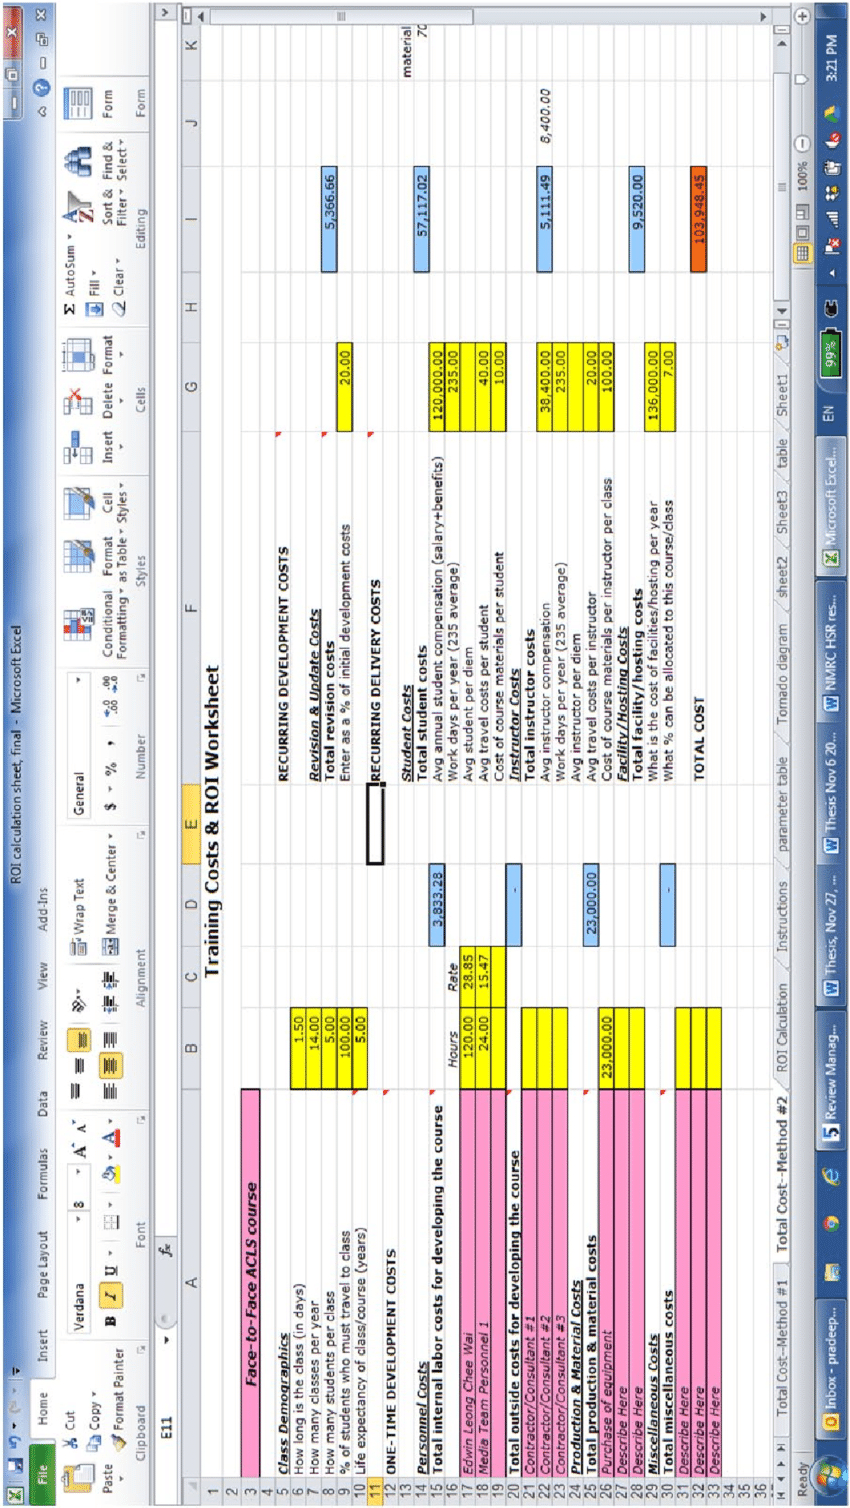 Investment Spreadsheet Within Figure A.3. Return On Investment Calculation Spreadsheet: Faceto